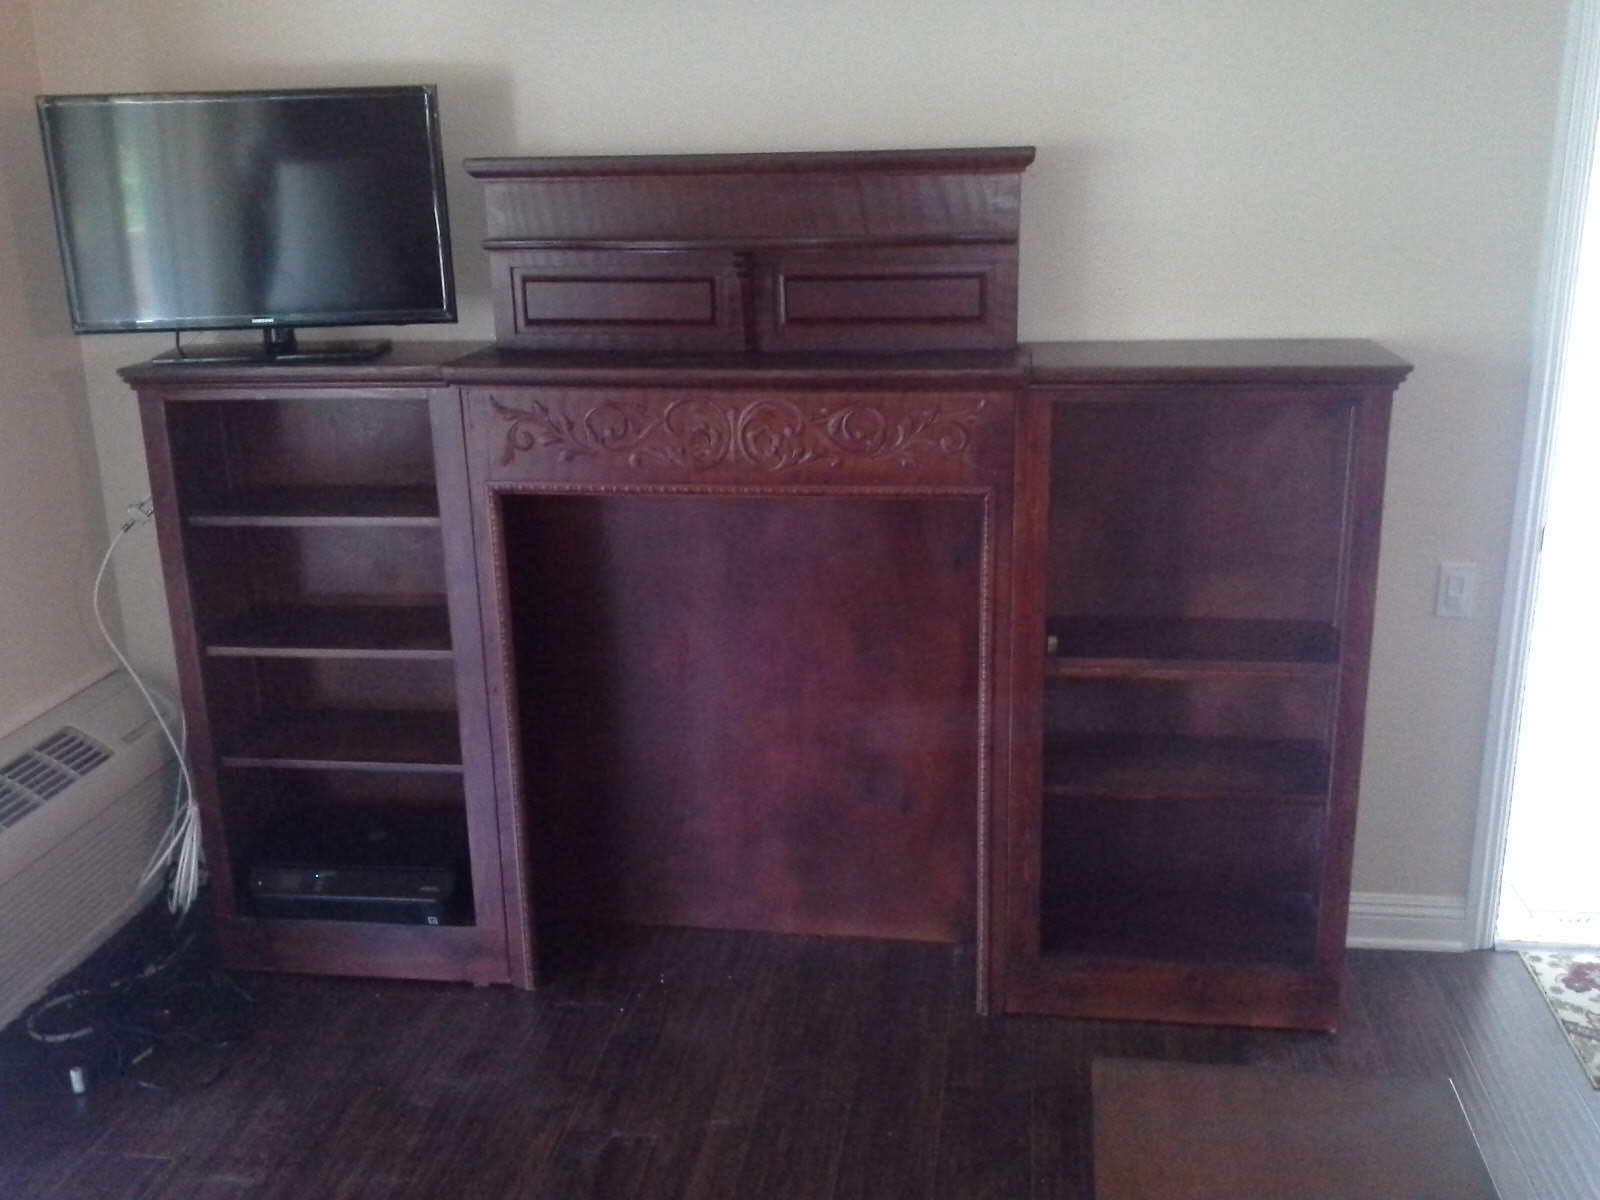 Huntington Bedroom Furniture Huntington Beach Furniture Repairs Wood Refinishing Huntington